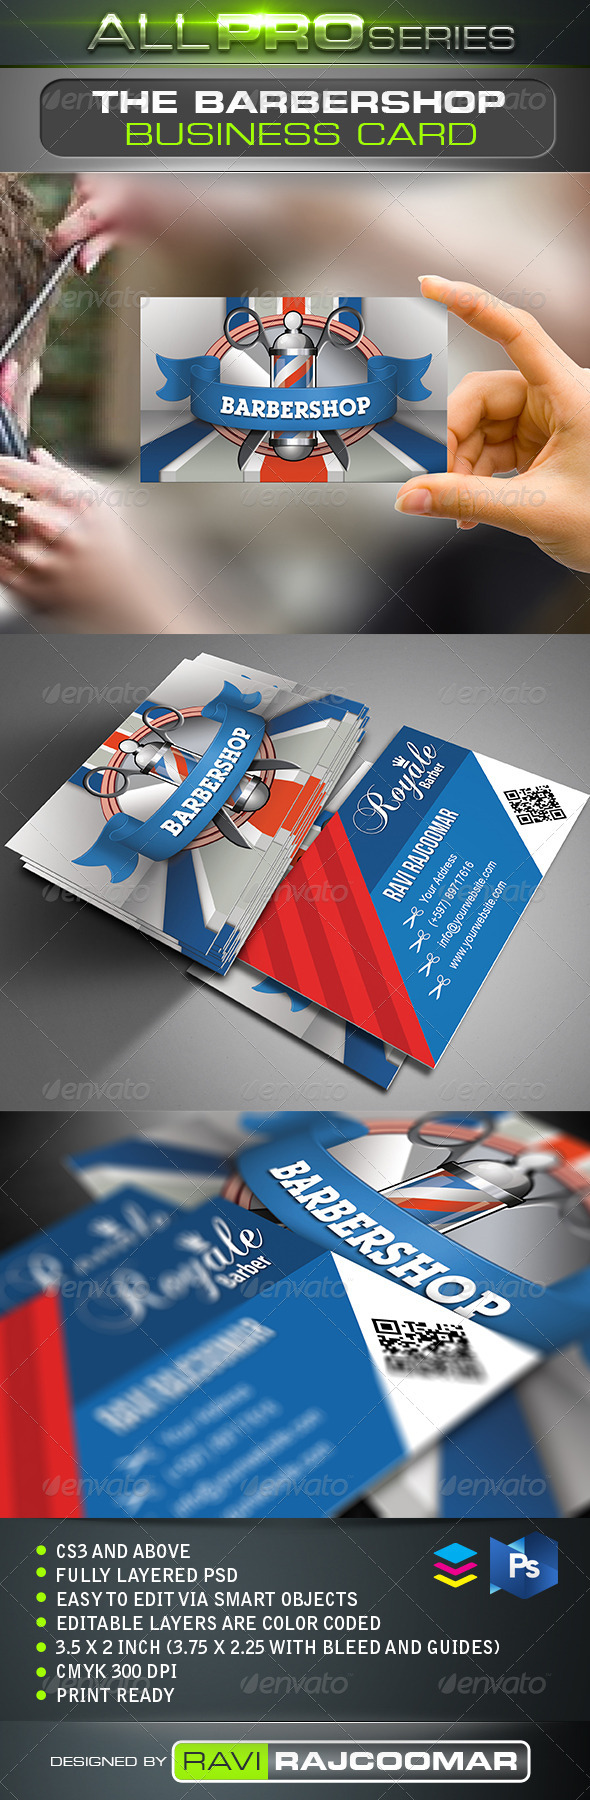 The Barbershop Business Card - Creative Business Cards